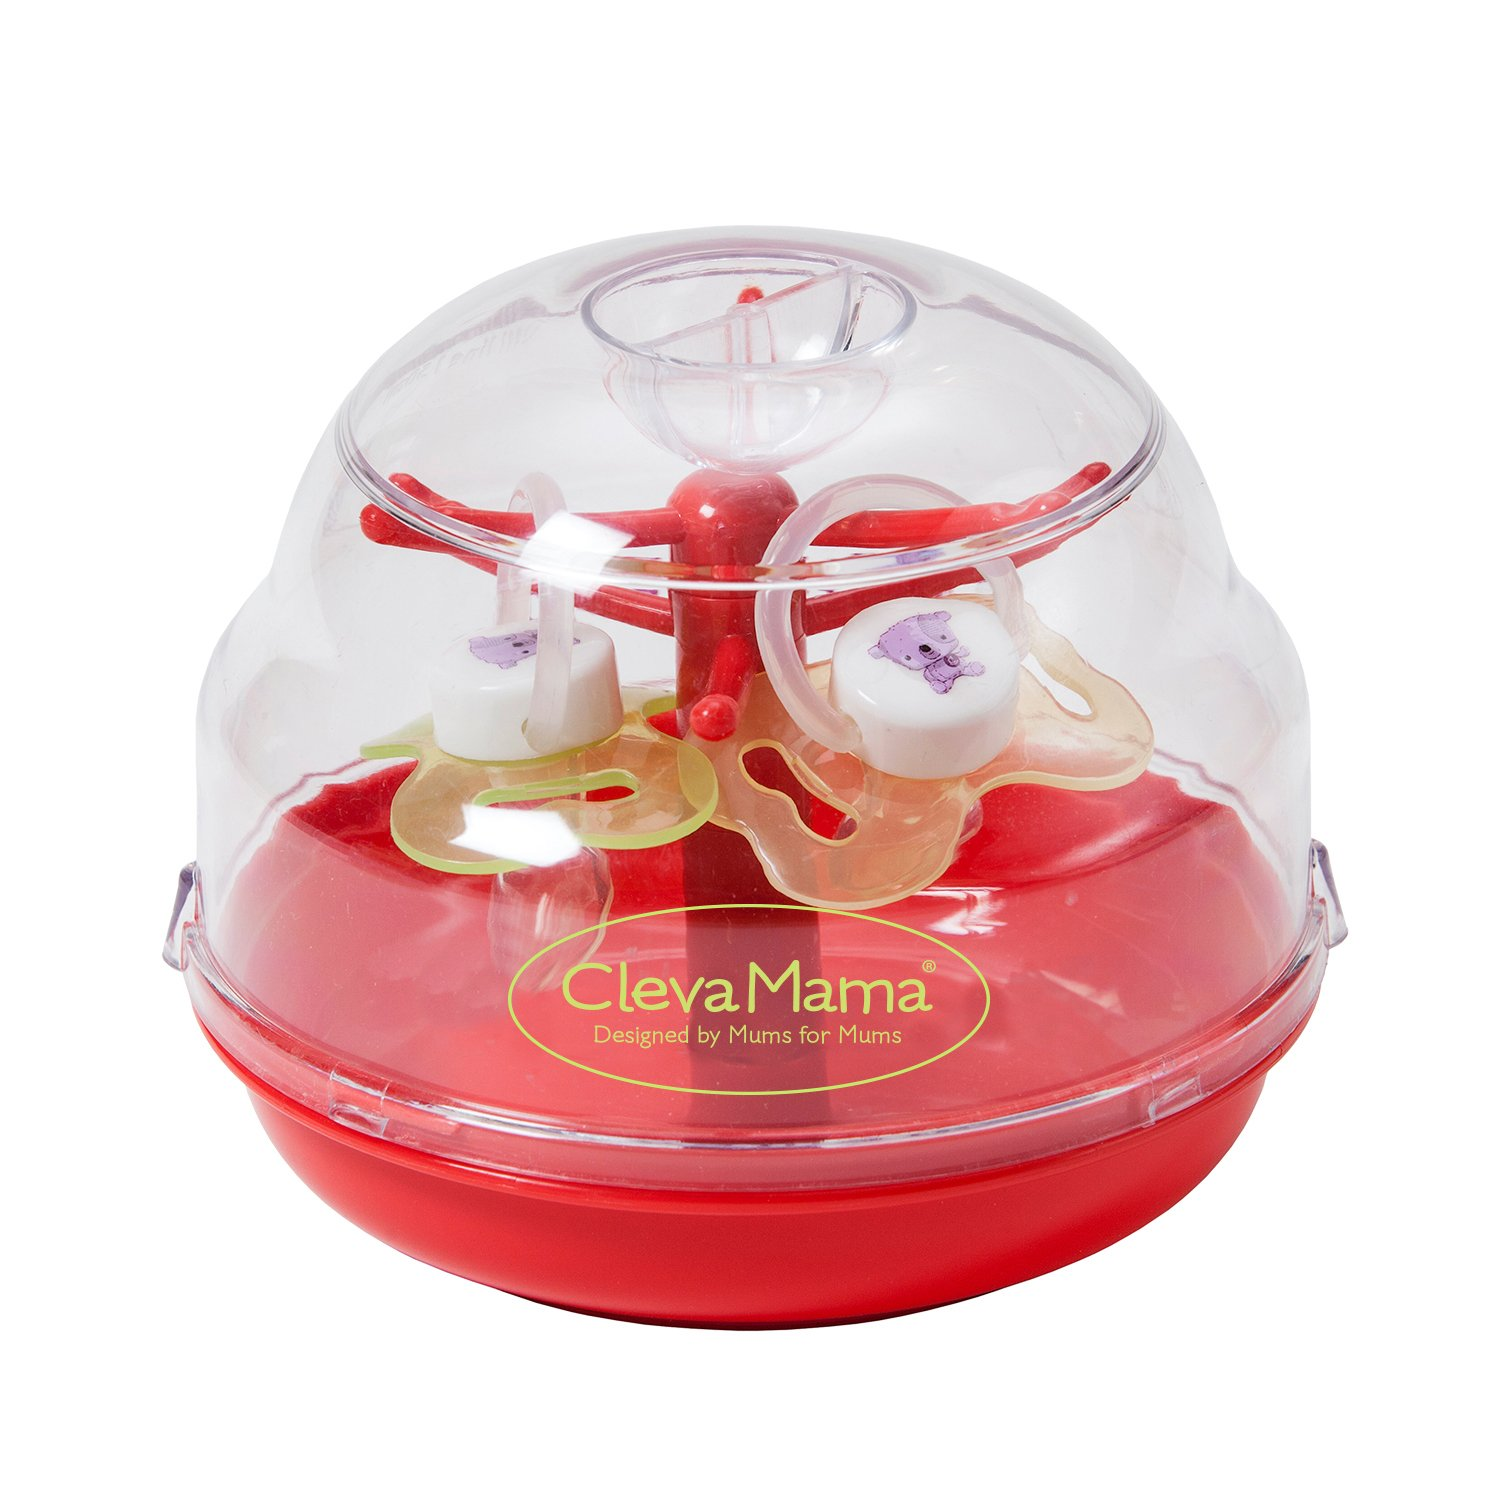 Clevamama Microwave Soother Pacifier Steriliser (BPA-free) 1000